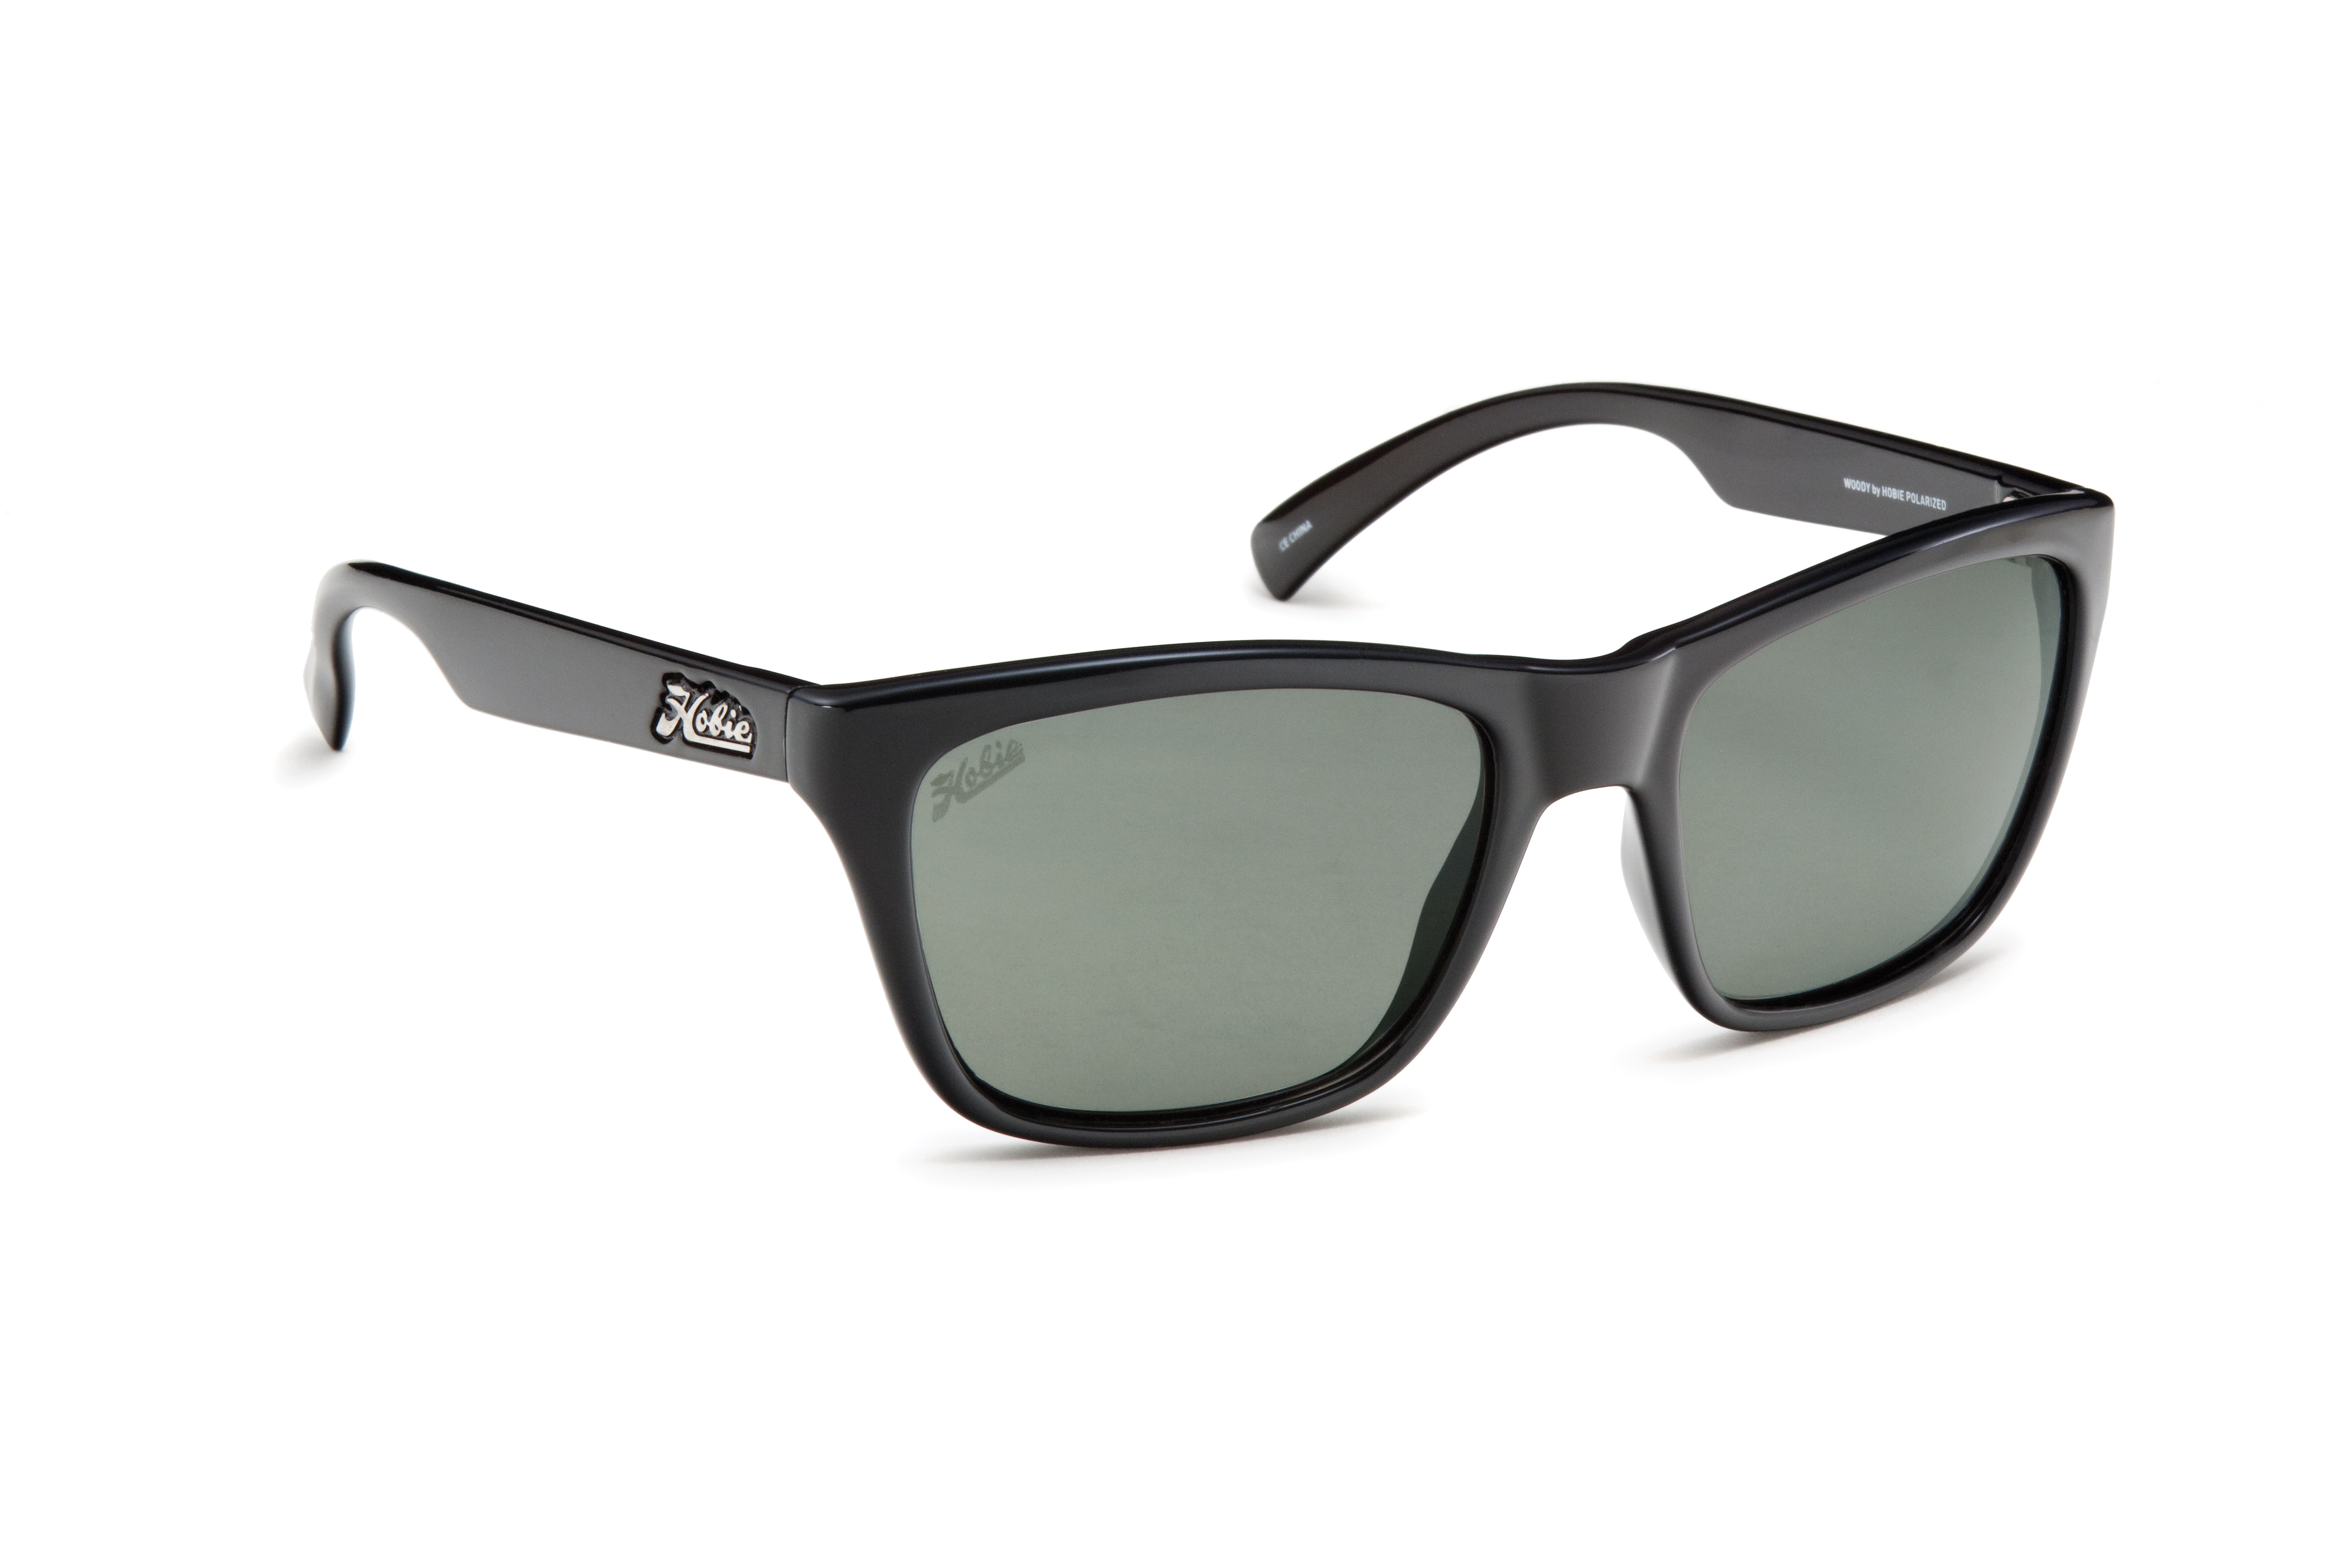 09f89a175e632 Under Armour Eye wear and Hobie Polarized Spring 2015 Preview NYC ...